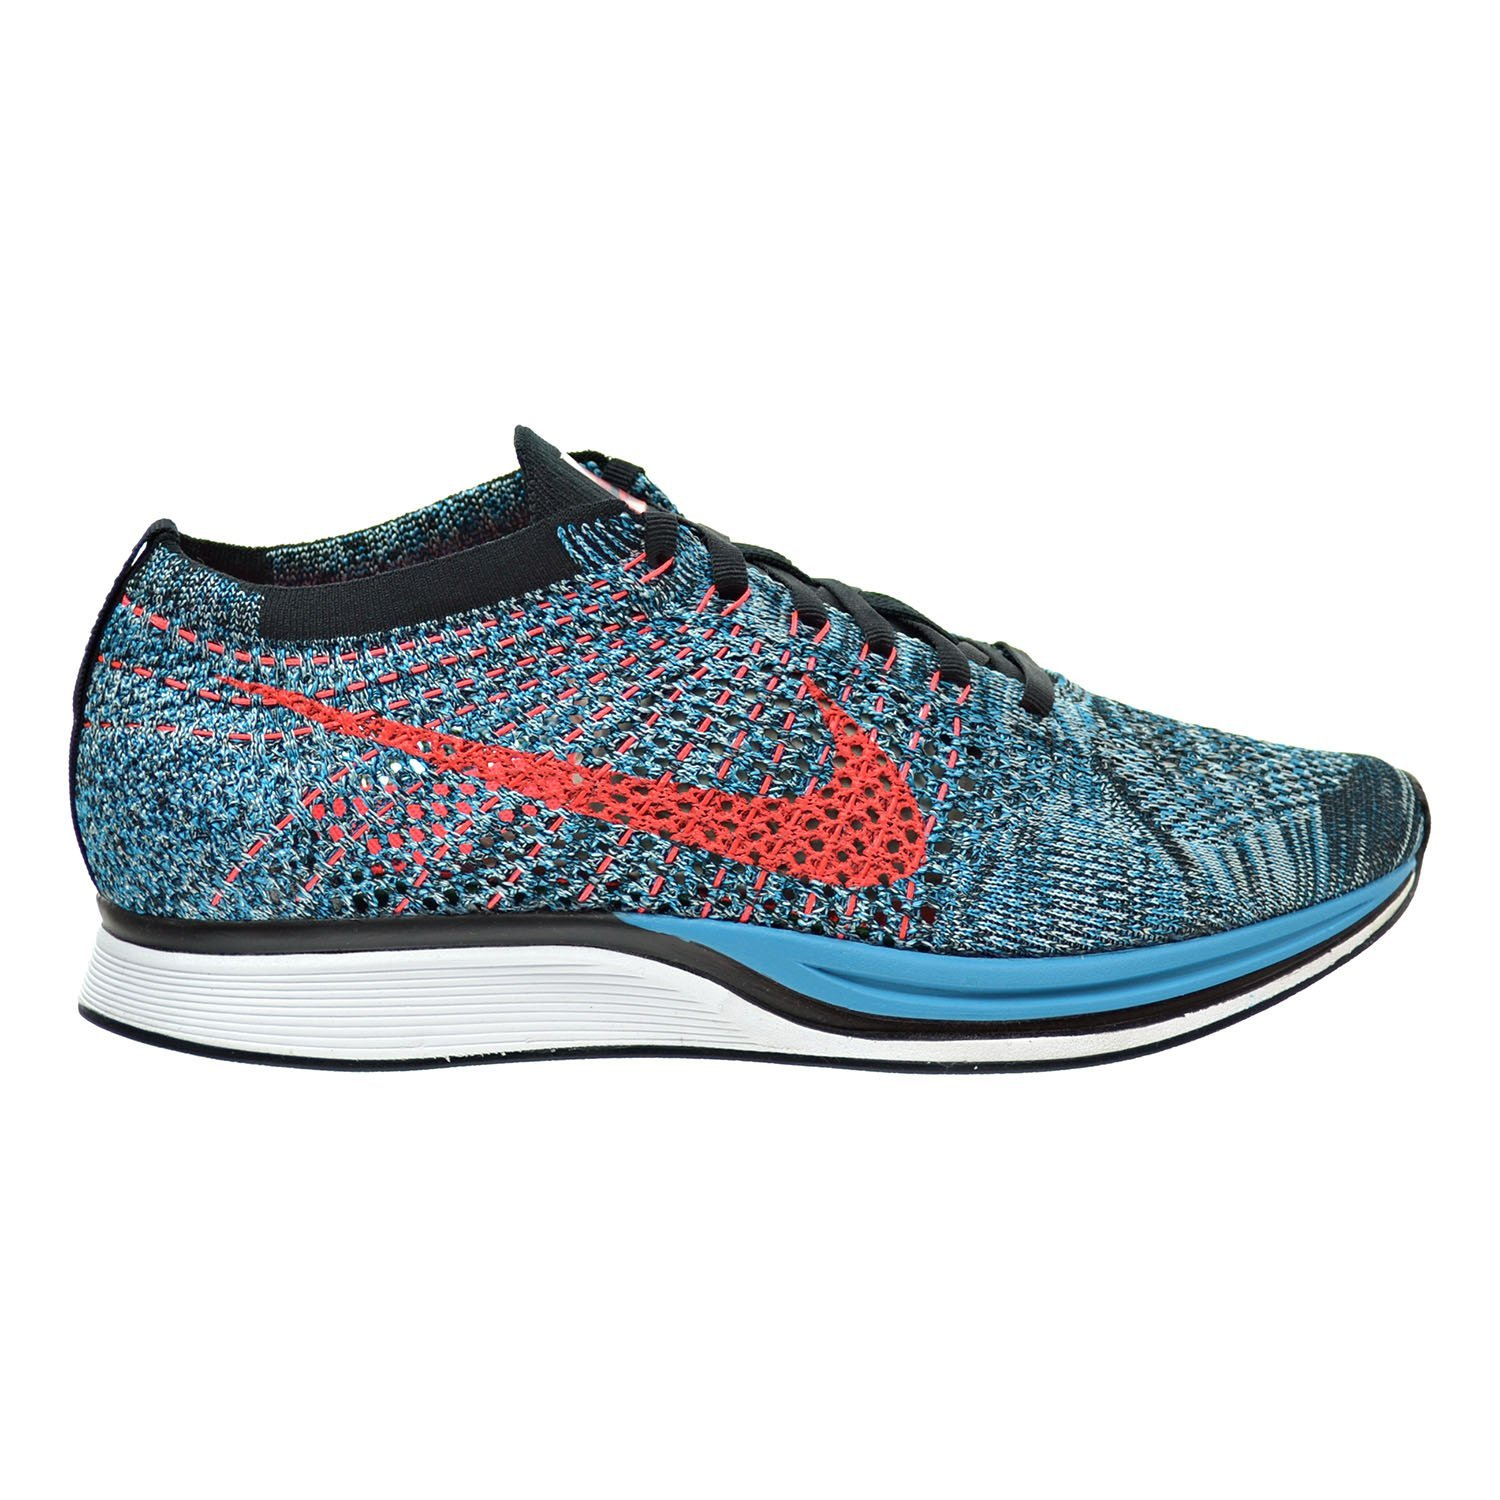 Vert   Rouge (Neo Turq   Brght Crimson-glcr Ic) Nike Flyknit Racer, Chaussures de Running Entrainement Homme 47.5 EU